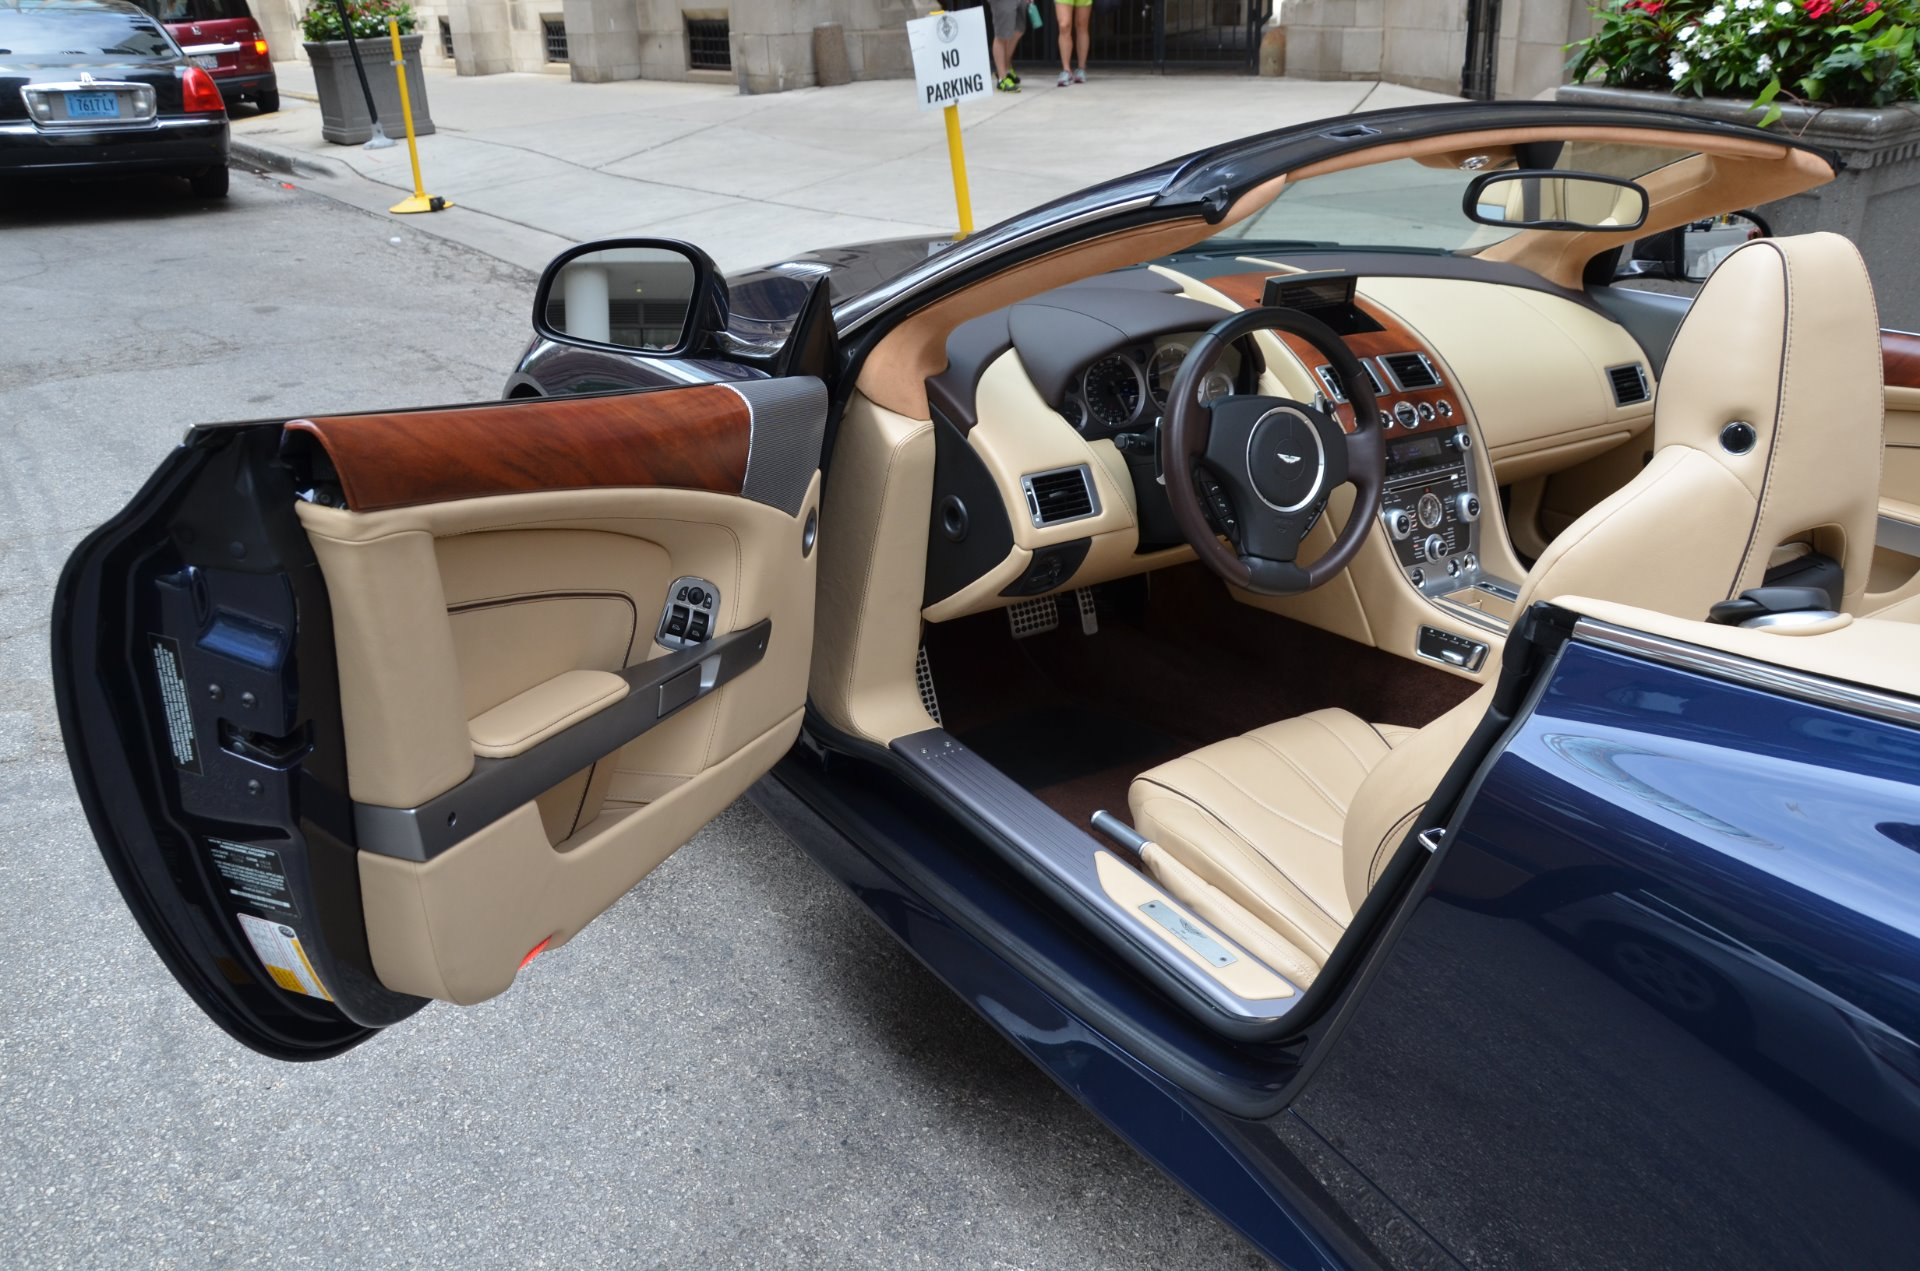 2014 aston martin db9 volante stock b793a s for sale. Black Bedroom Furniture Sets. Home Design Ideas